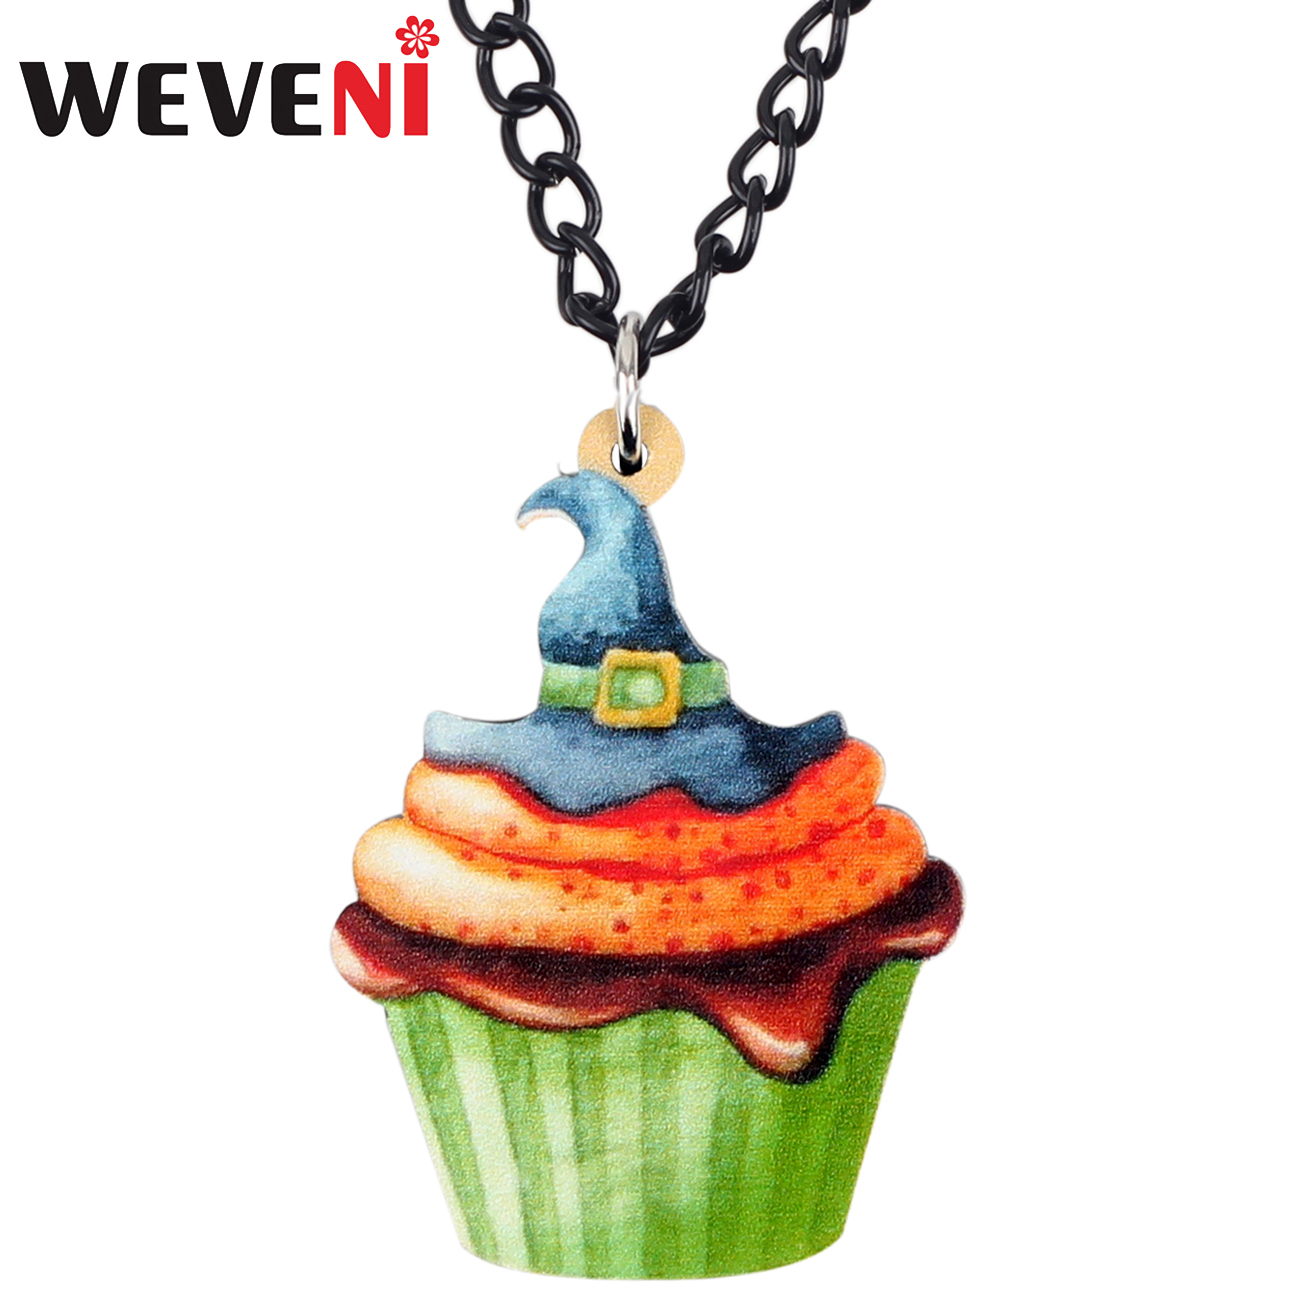 Gentle Weveni Acrylic Halloween Cartoon Hat Cupcake Necklace Pendant Collier Cute Food Jewelry For Women Girls Teens Gift Accessories To Make One Feel At Ease And Energetic Jewellery & Watches